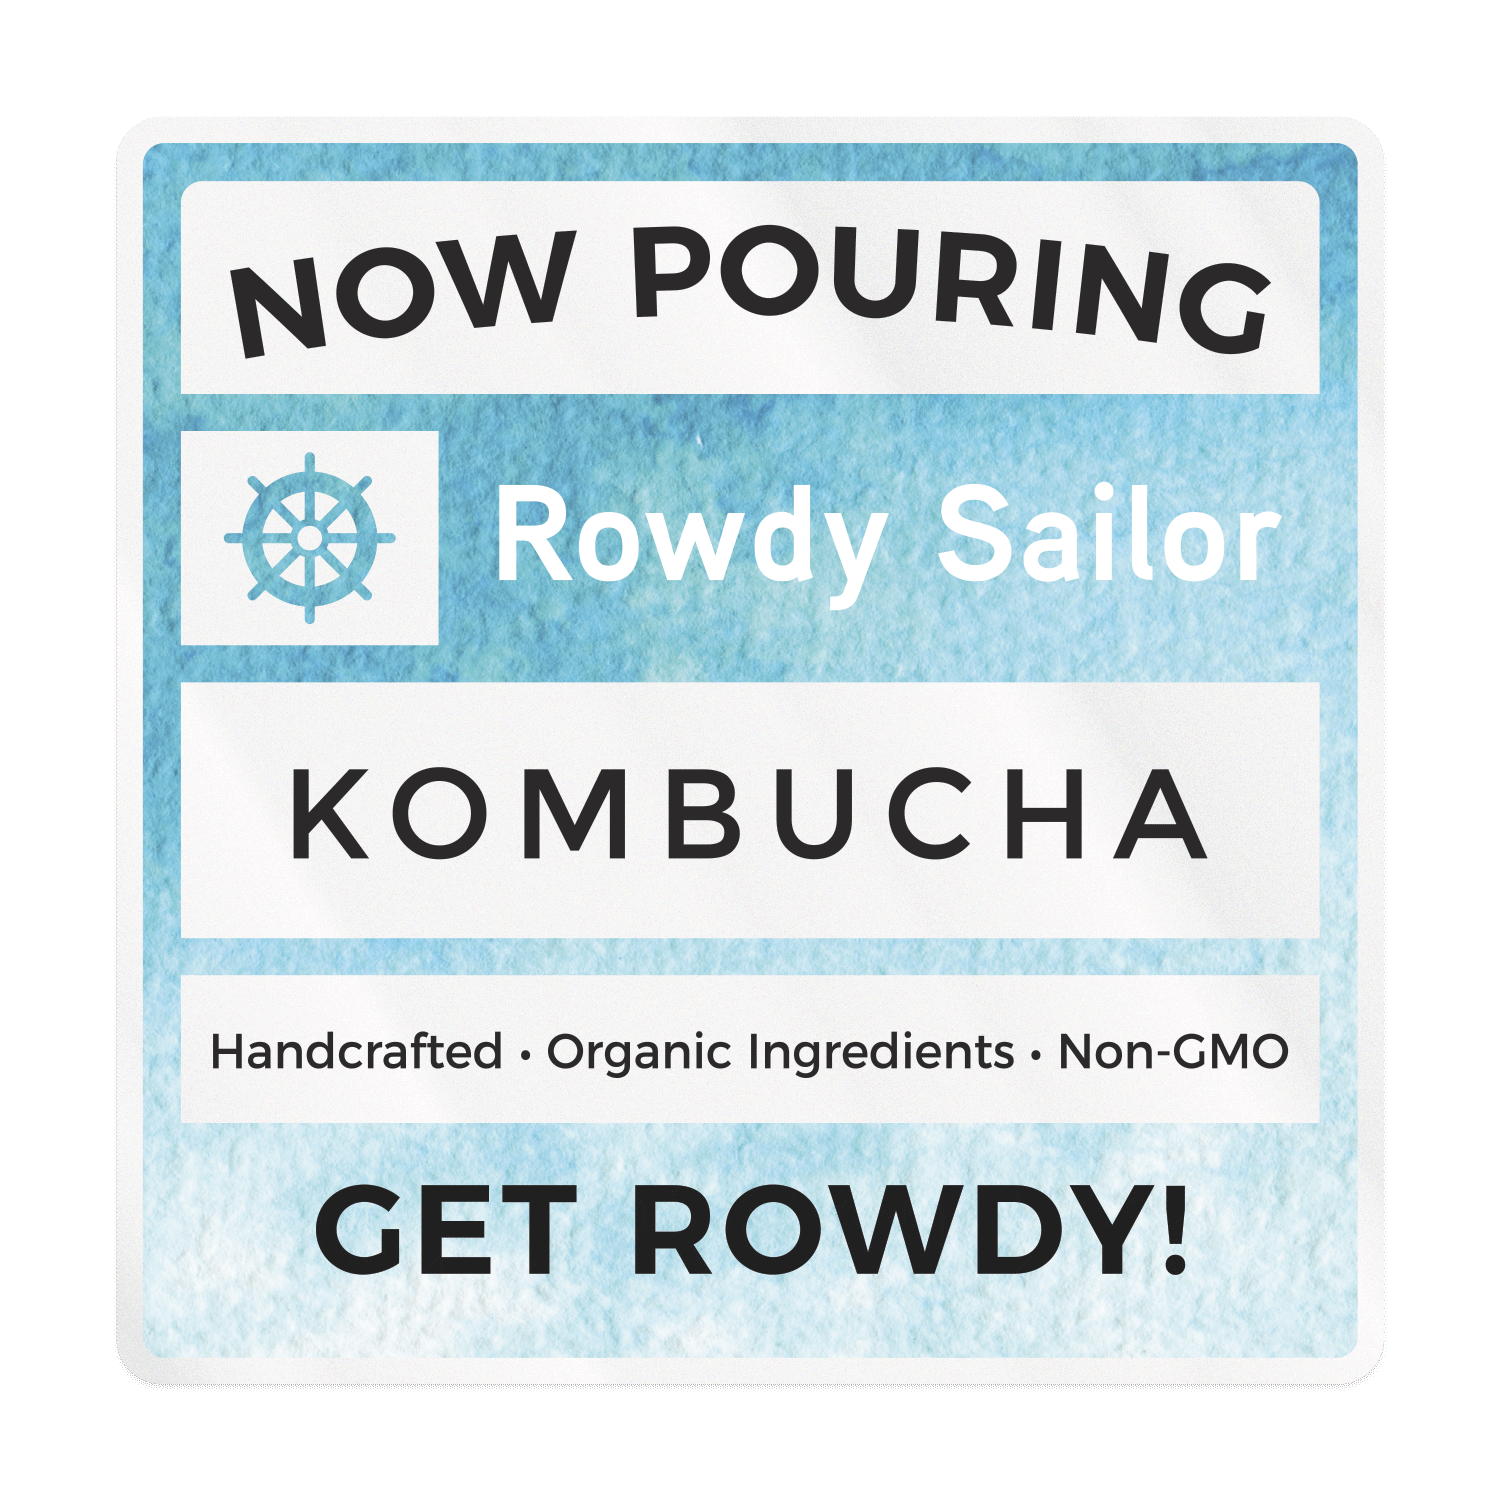 https://www.sswprinting.com/images/products_gallery_images/188308_Rowdy-Sailor-Kombucha_hi-res.png